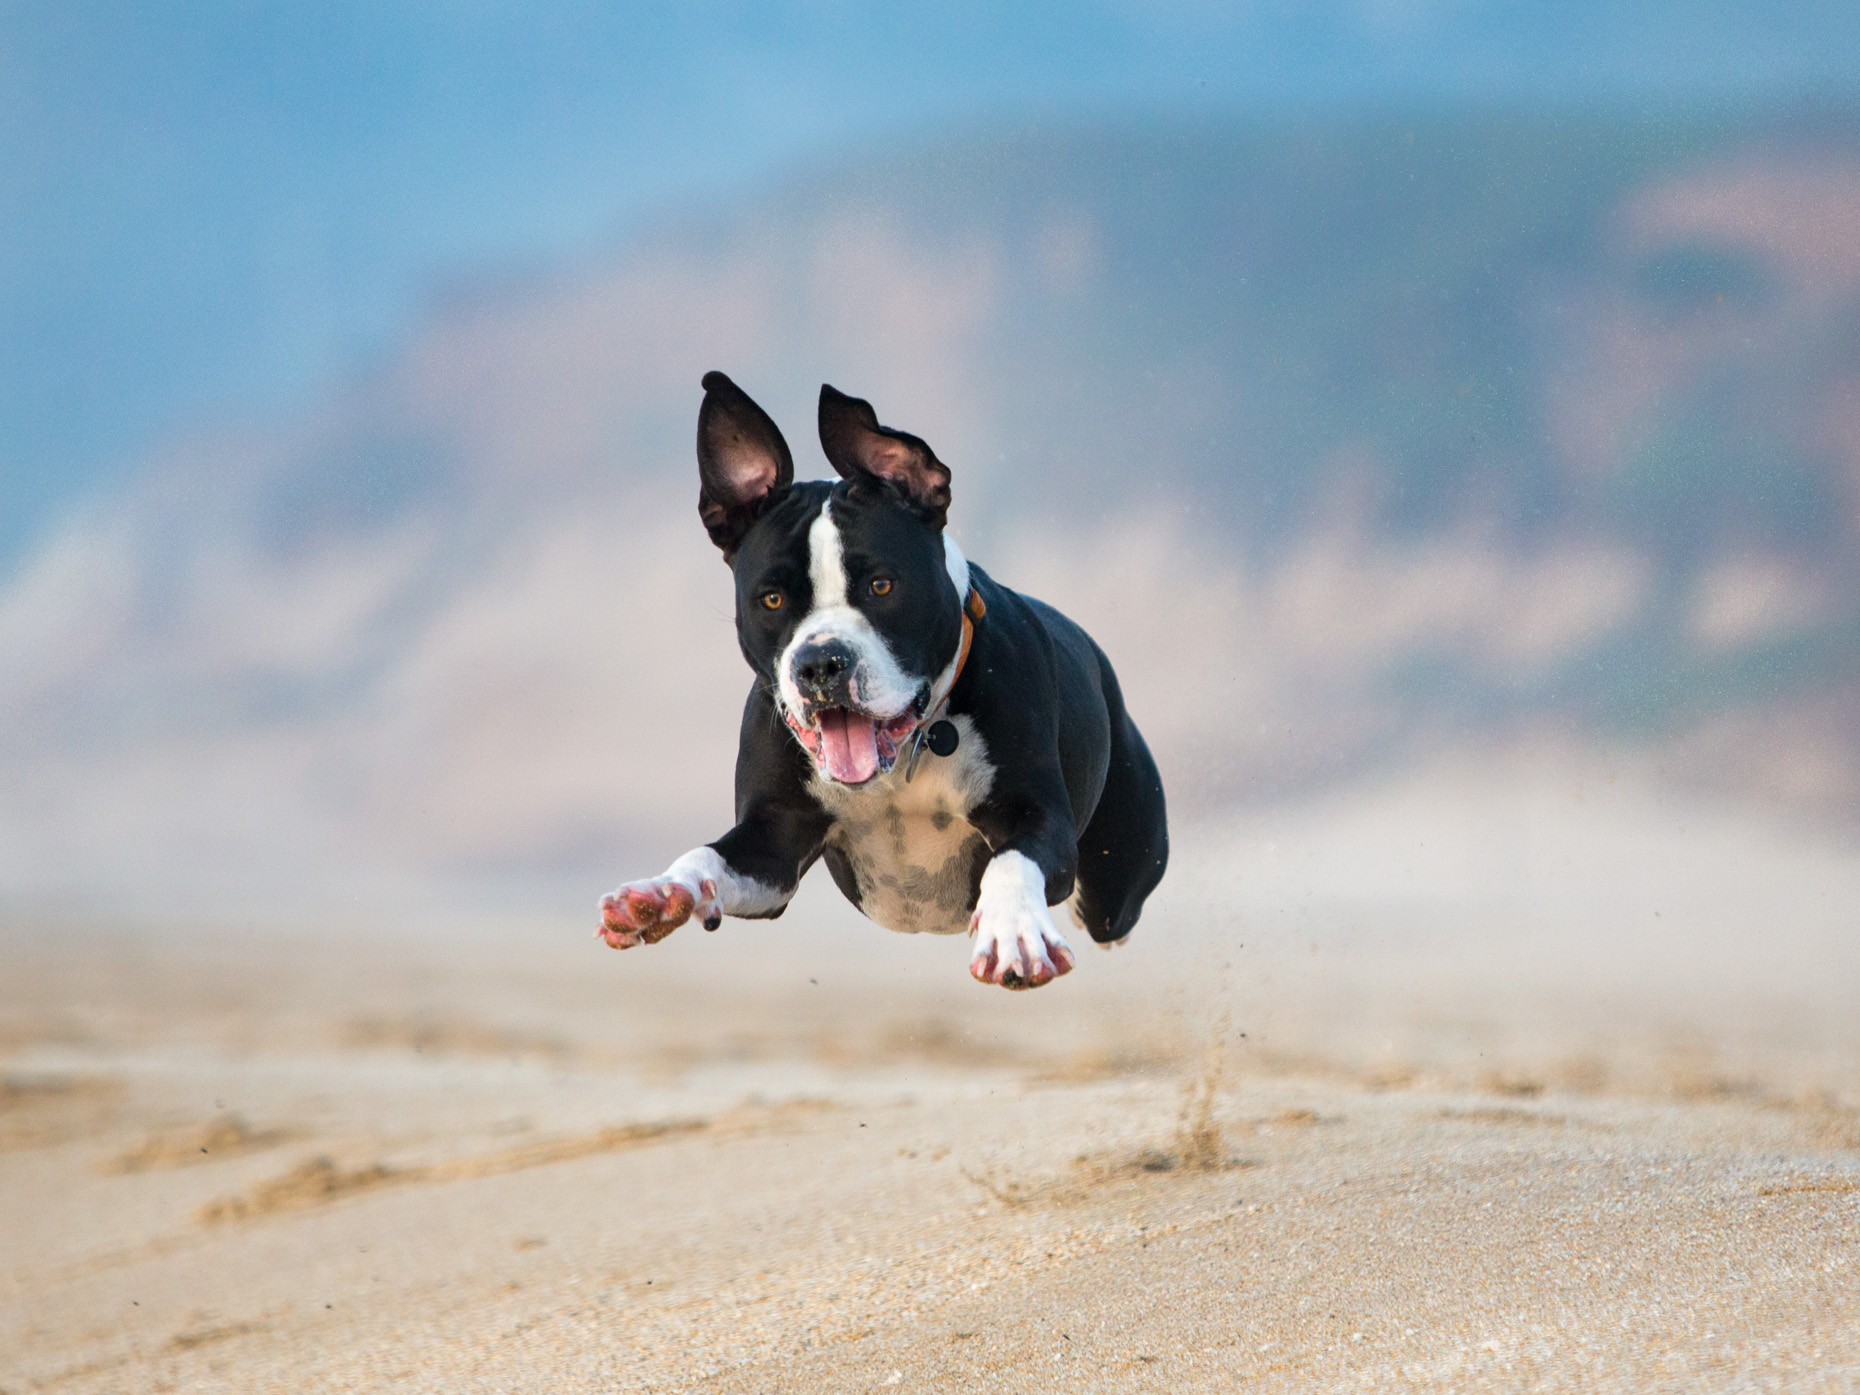 Dog Lifestyle Photography | Pitbull on Beach by Mark Rogers